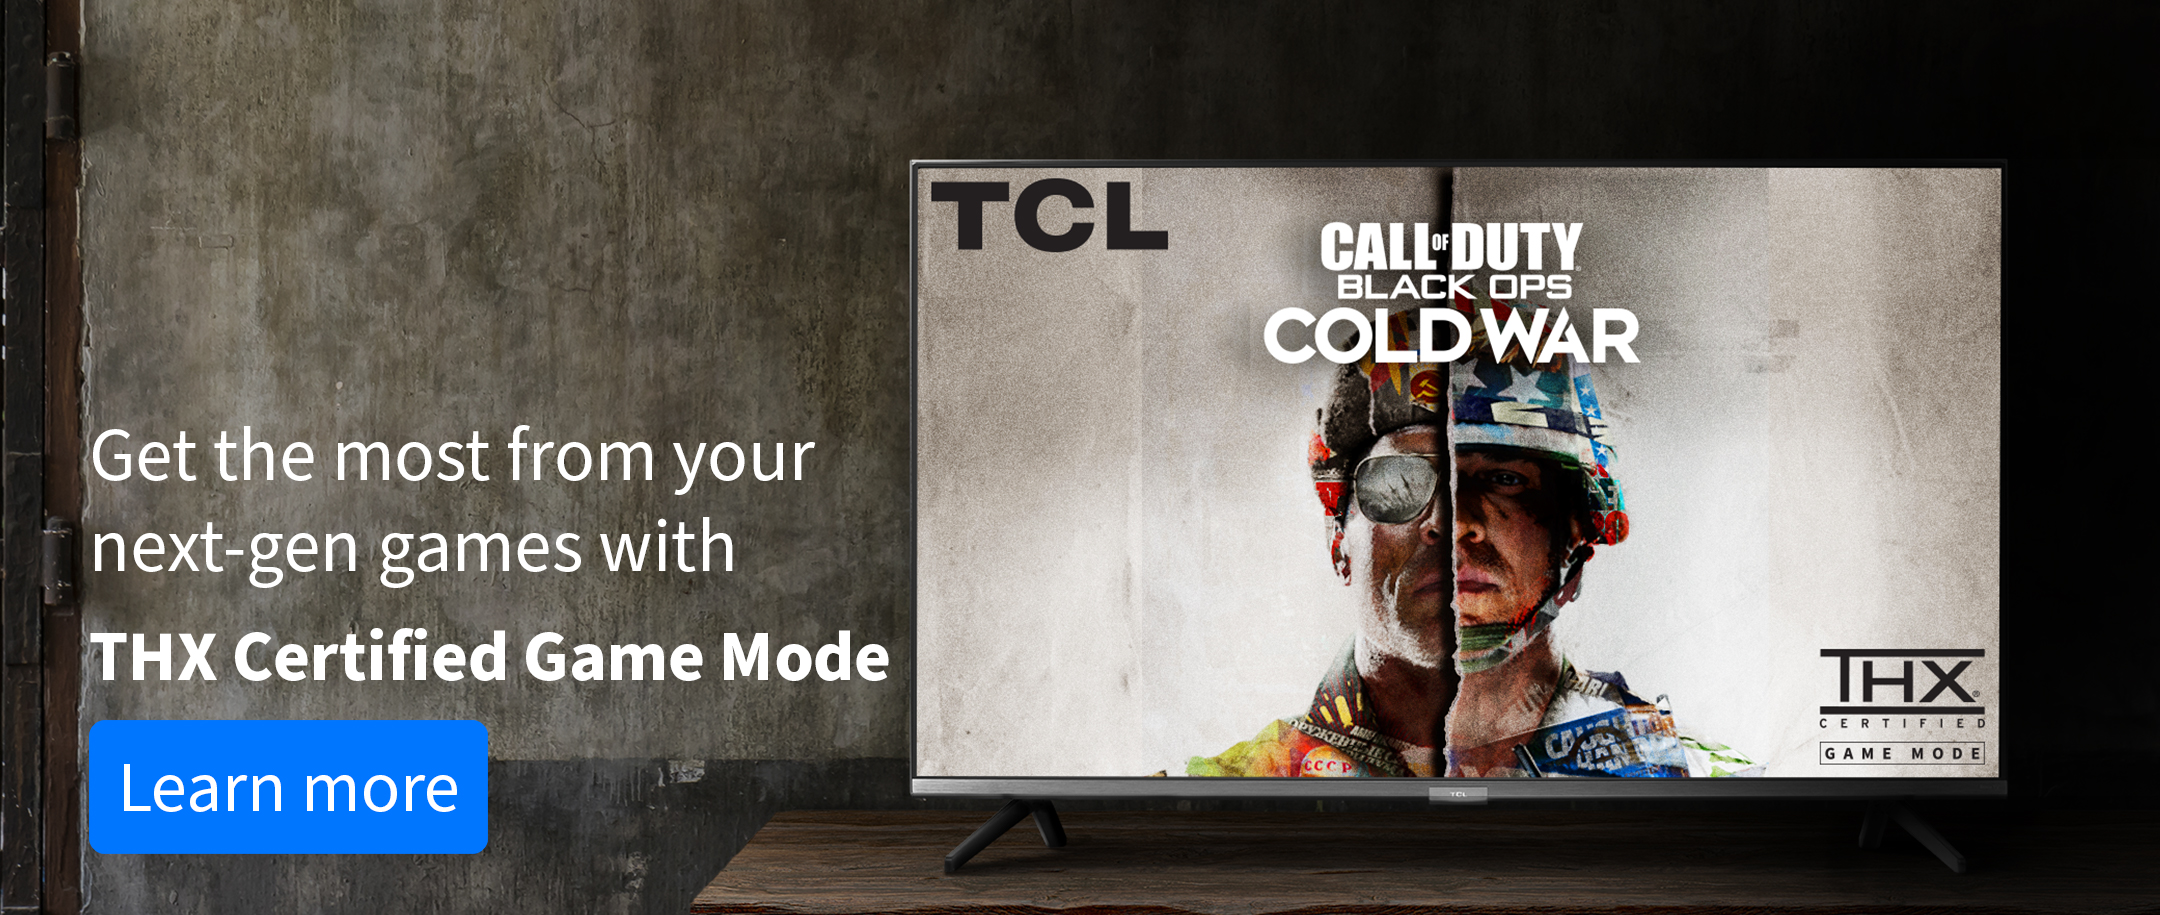 TCL 6 Series TV with Call of Duty:Cold War